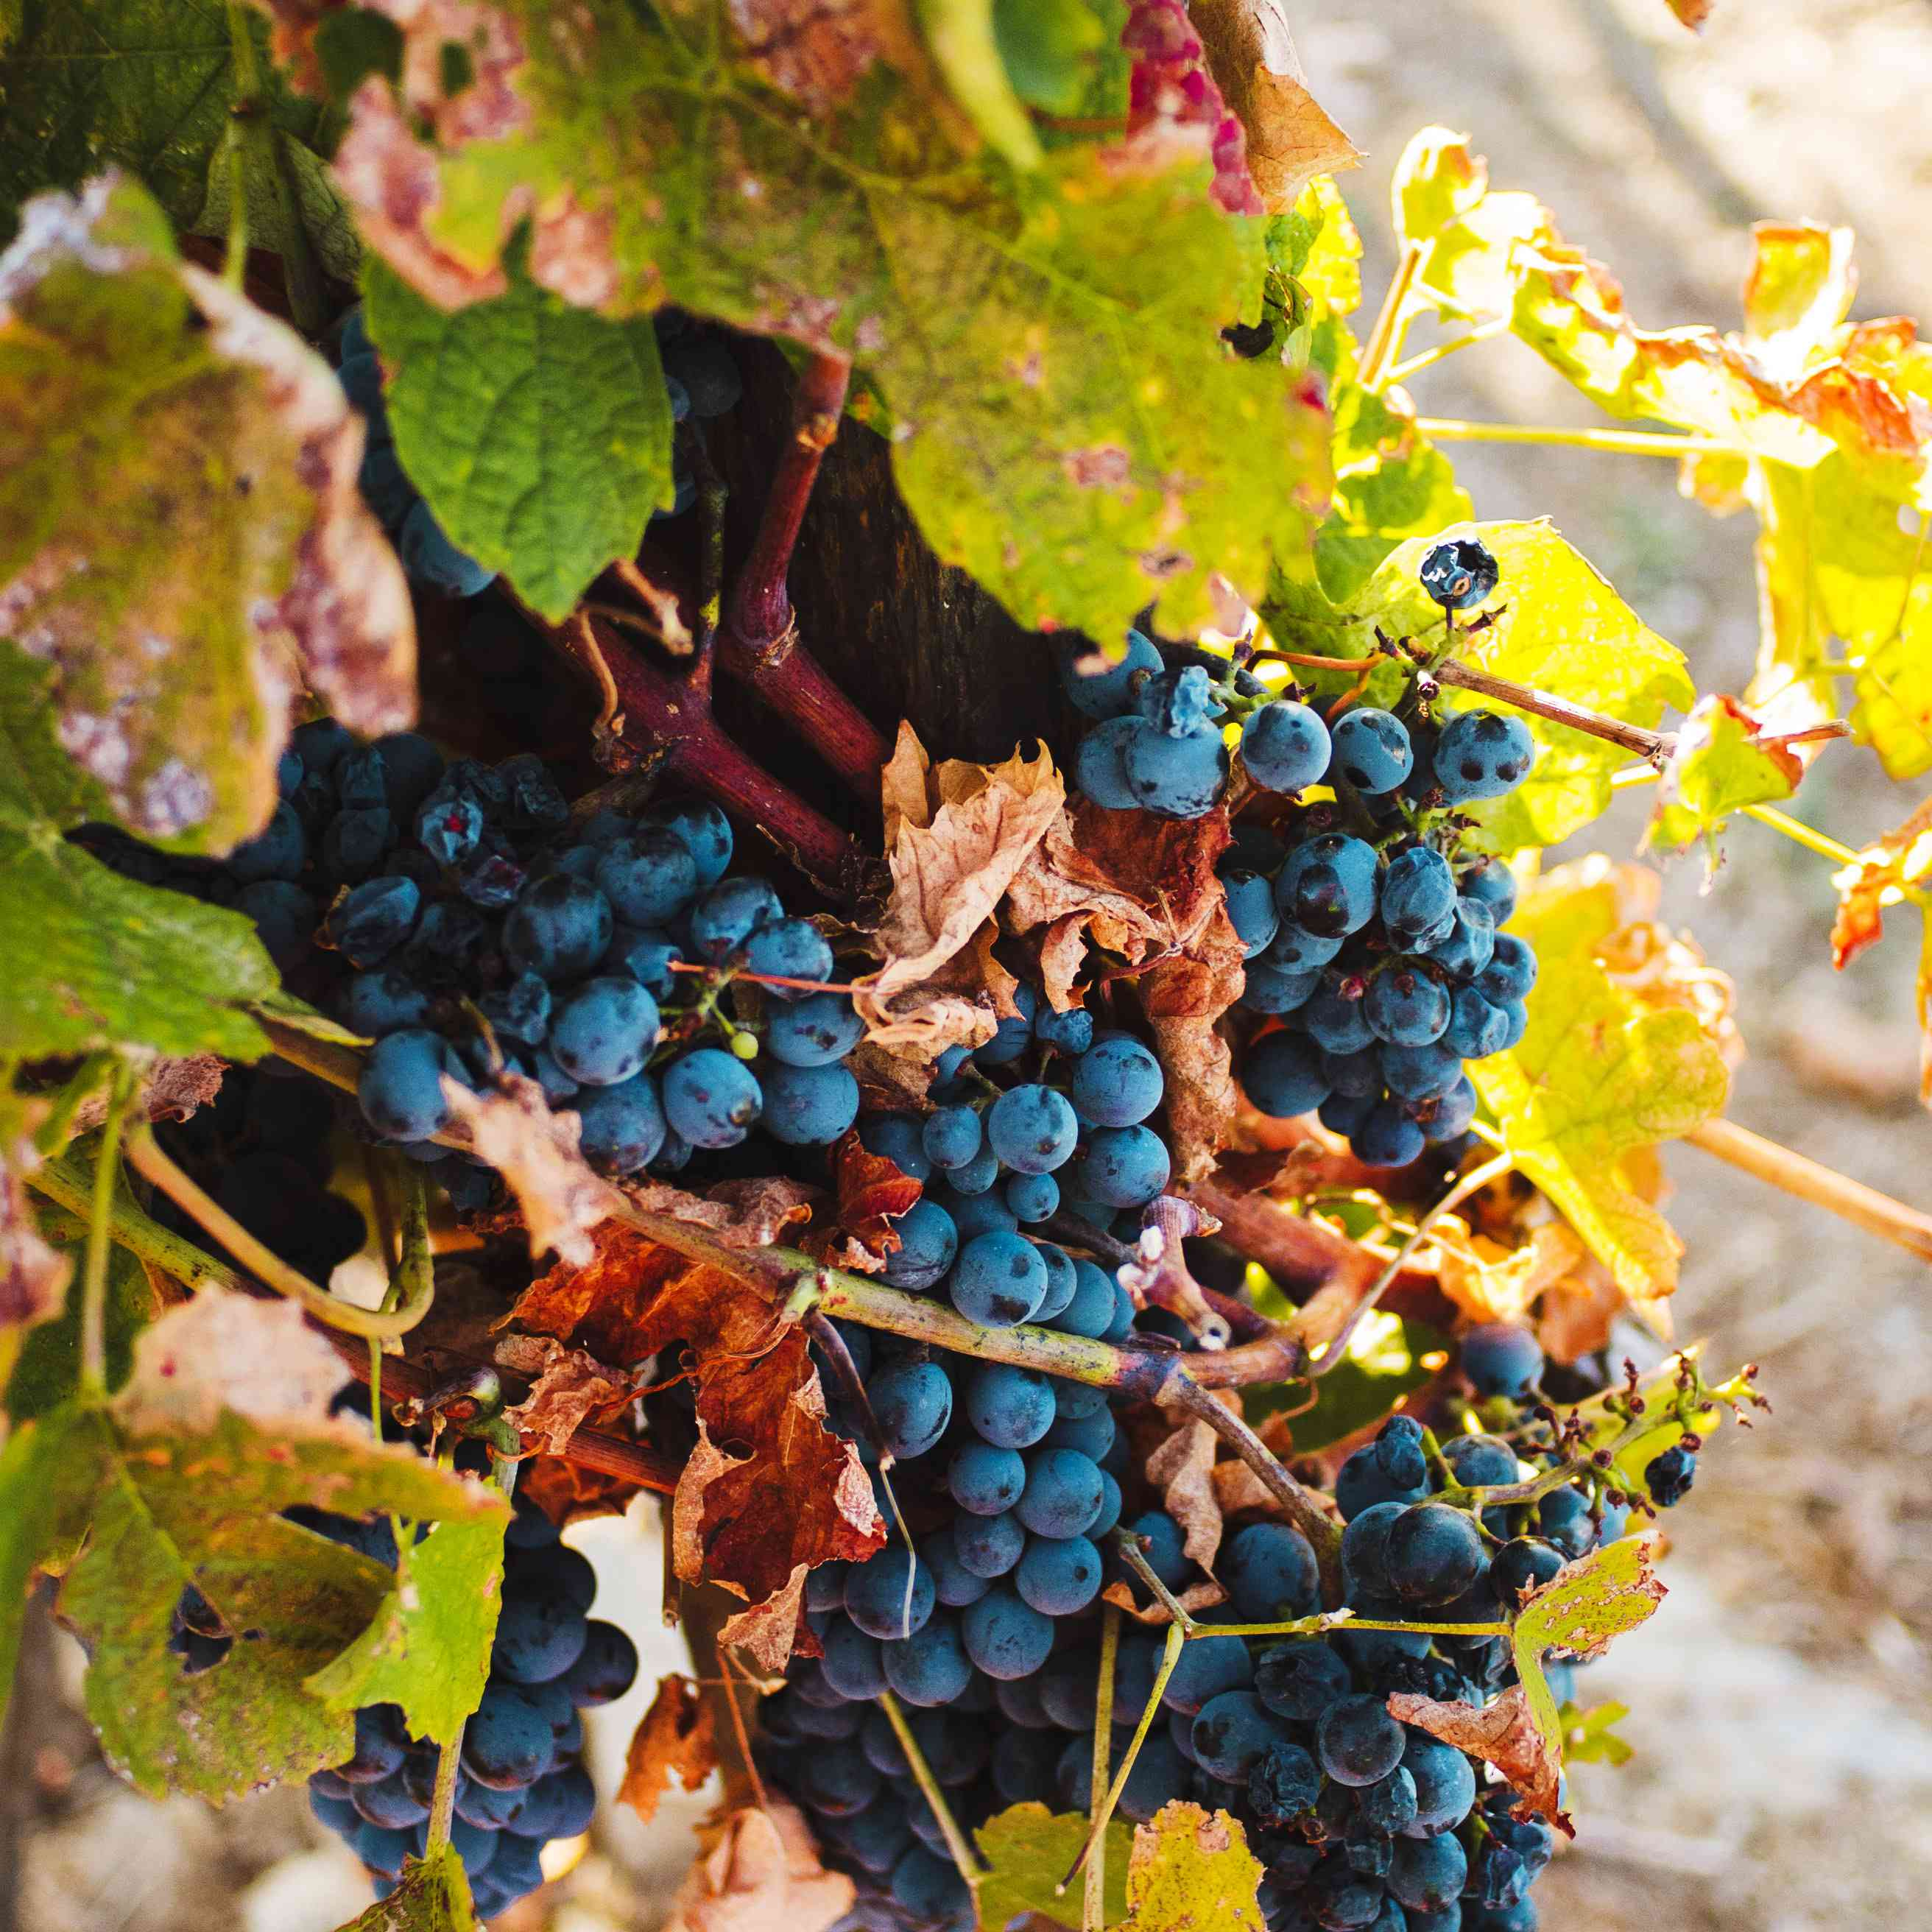 The grapes in the vineyards